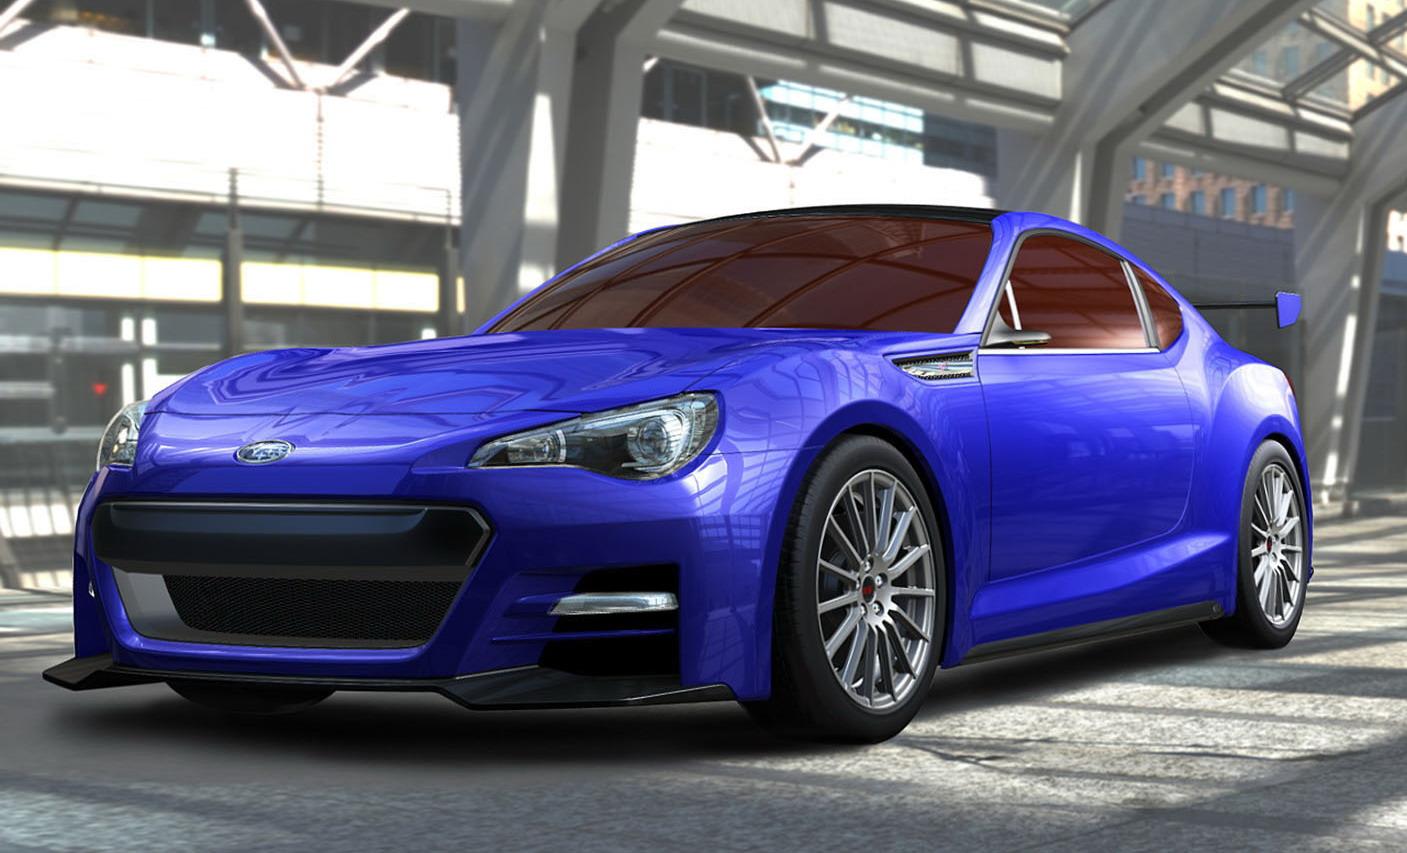 2015 subaru brz turbo review - top speed